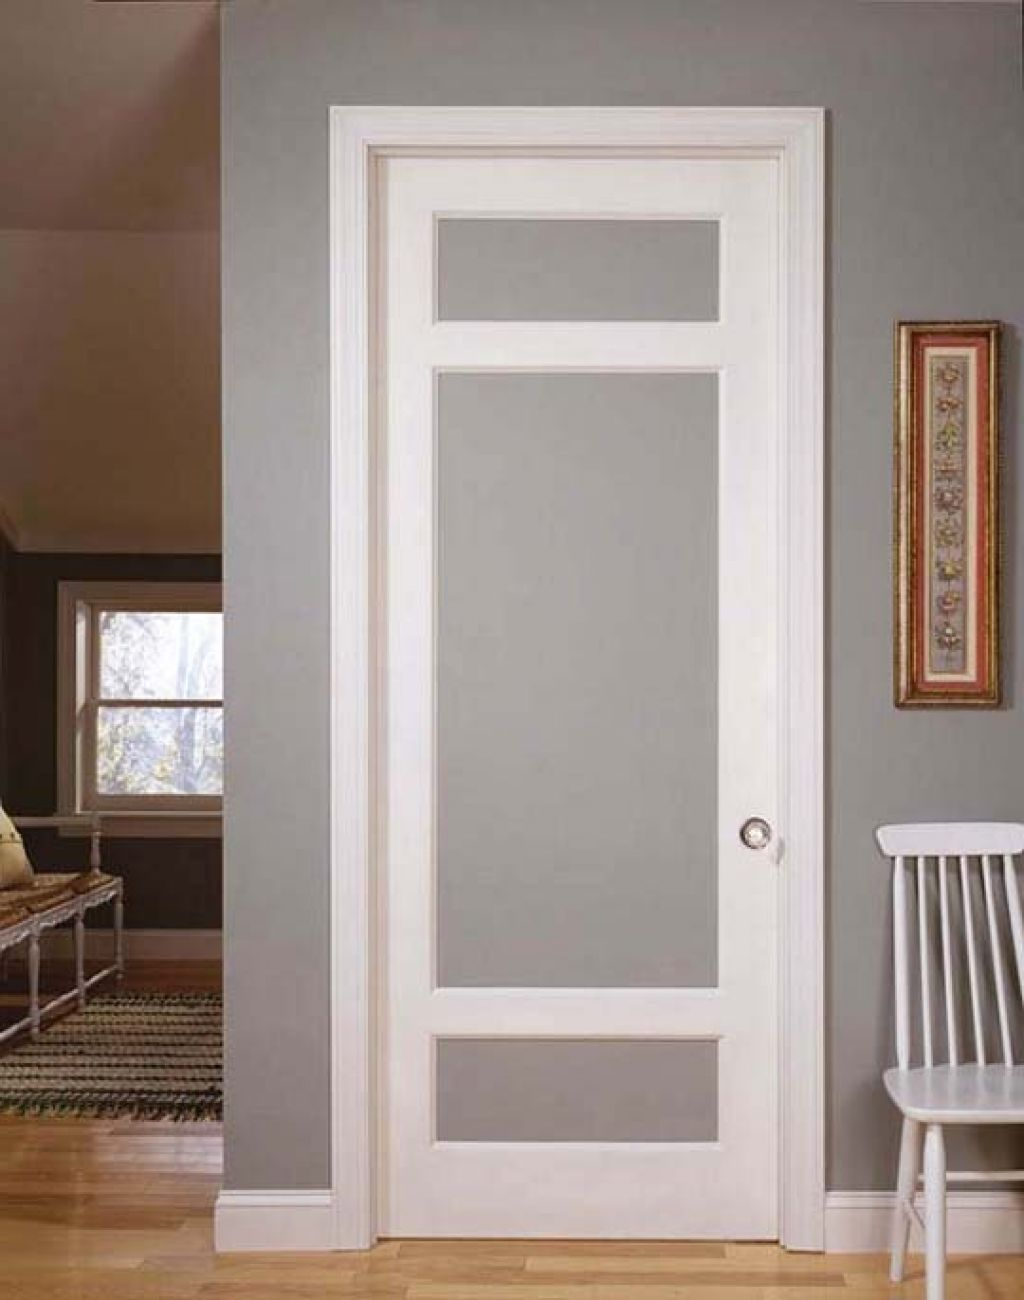 French doors interior frosted glass an ideal material for use in any wardrobe door style Interior doors frosted glass